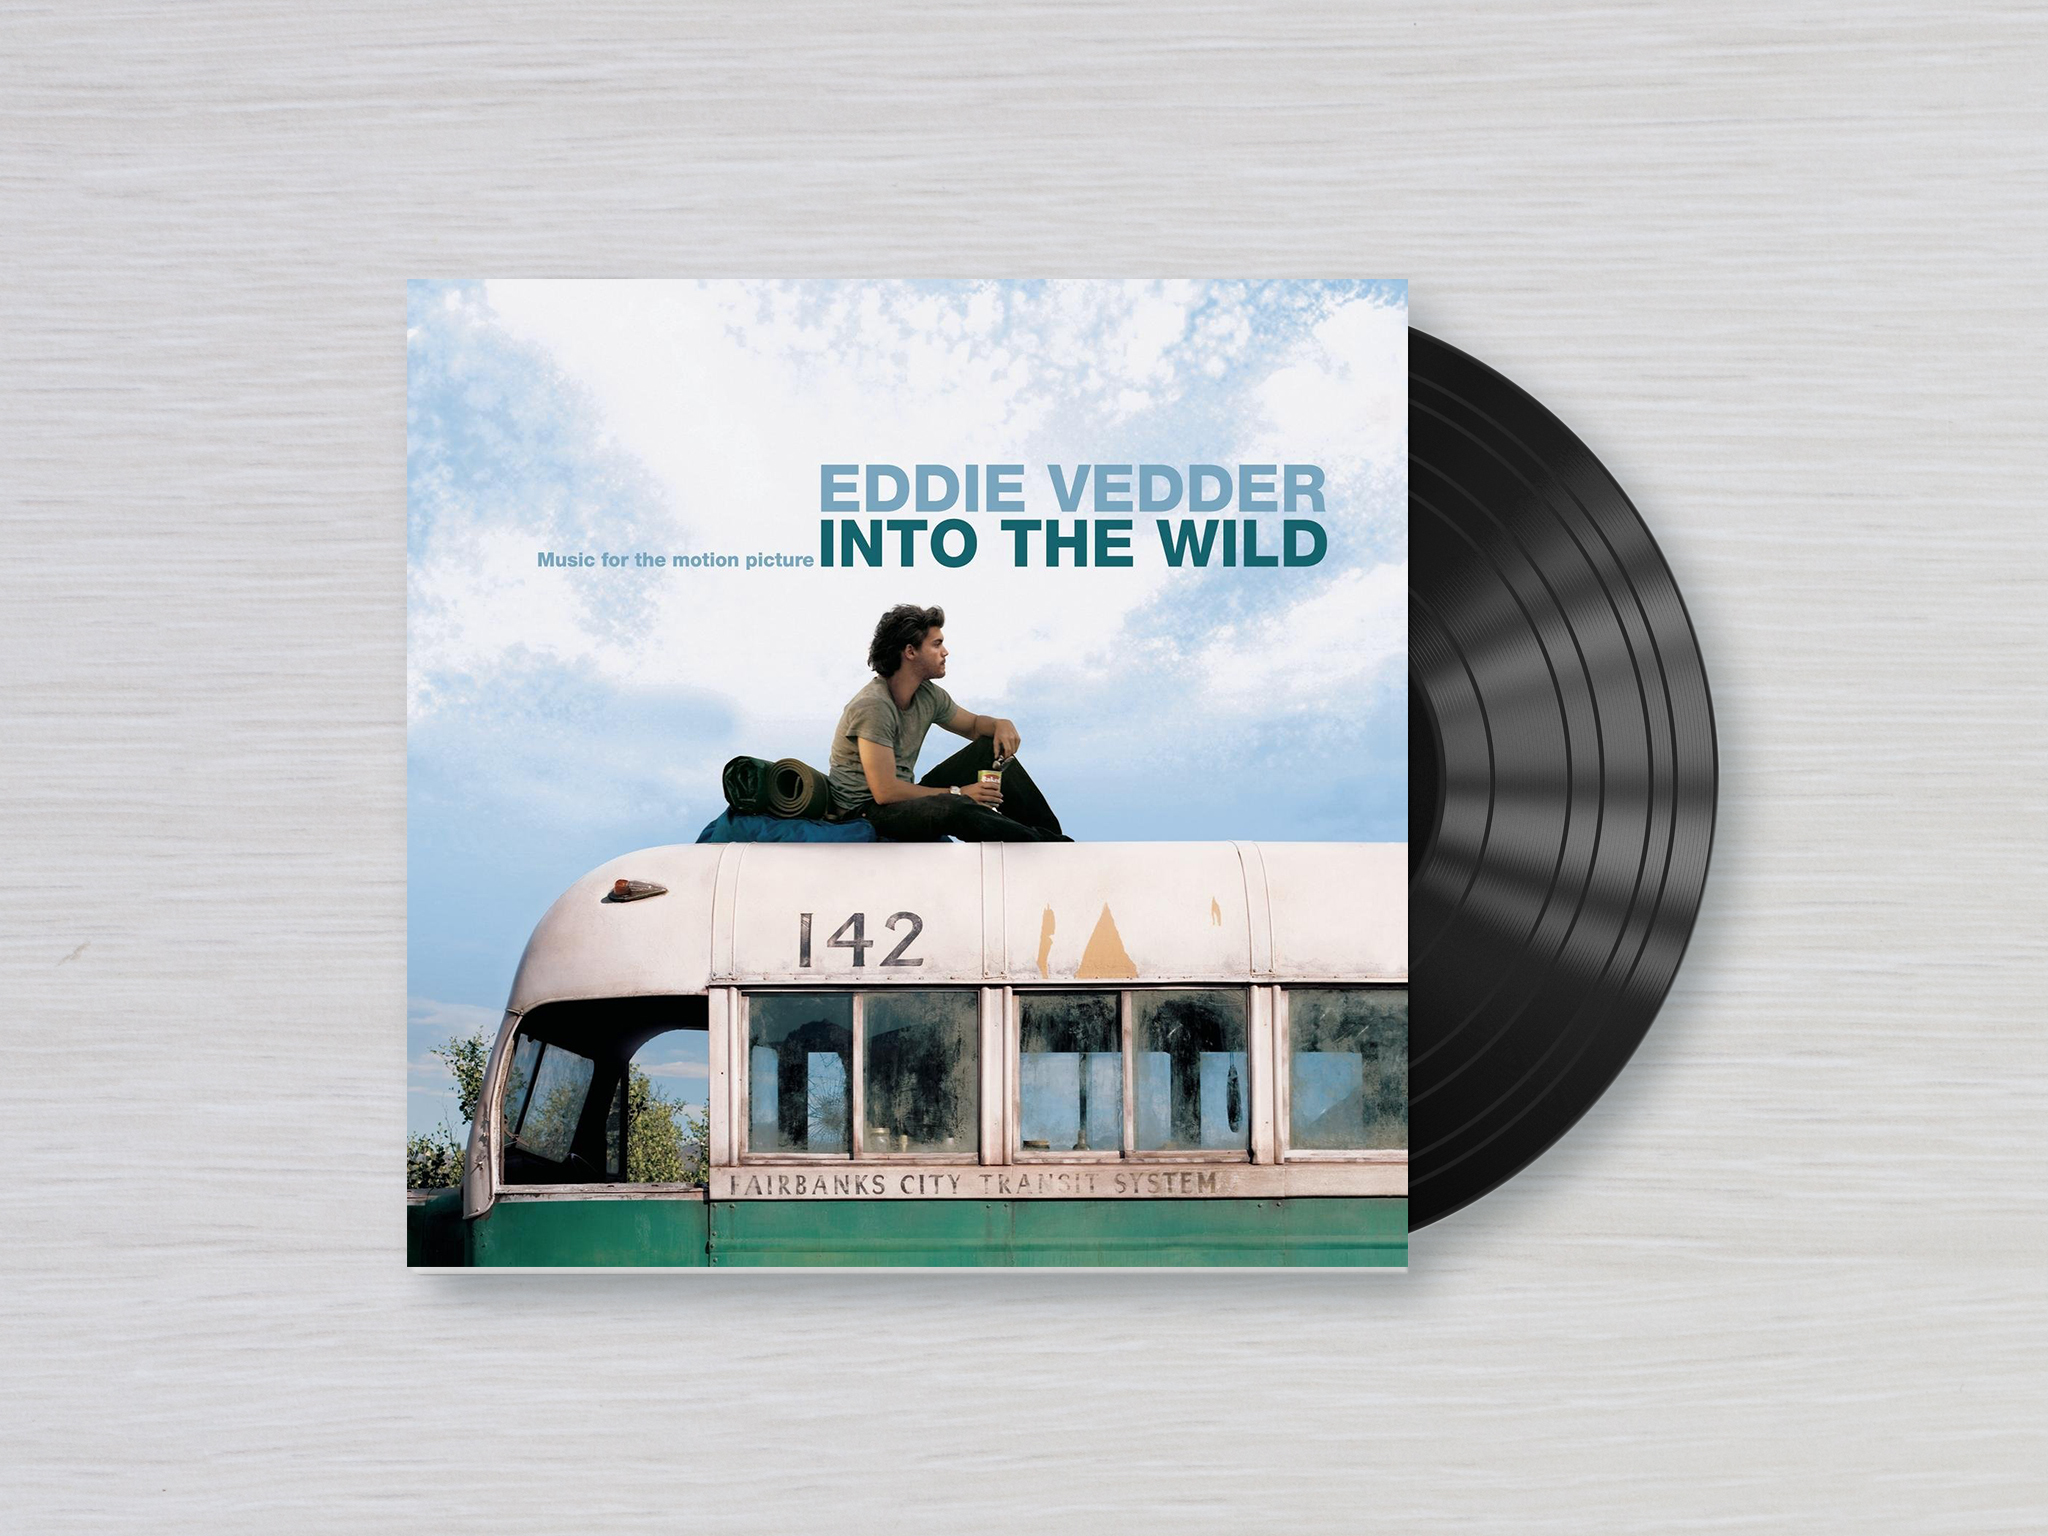 EL soundtrack de la película Into The Wild